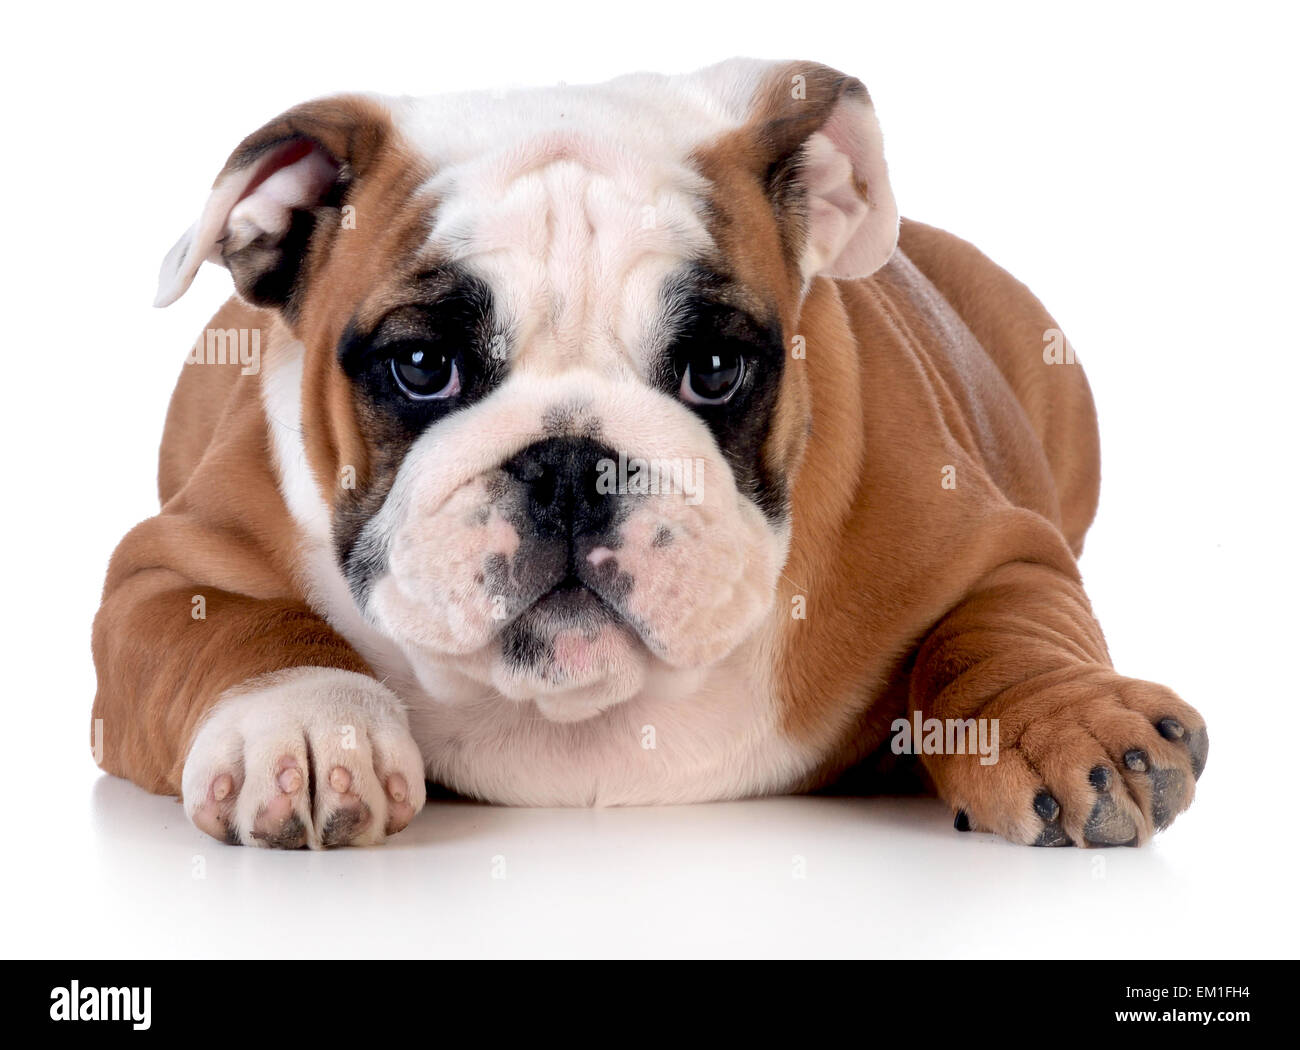 bulldog puppy laying down looking at viewer on white background - 12 weeks old - Stock Image